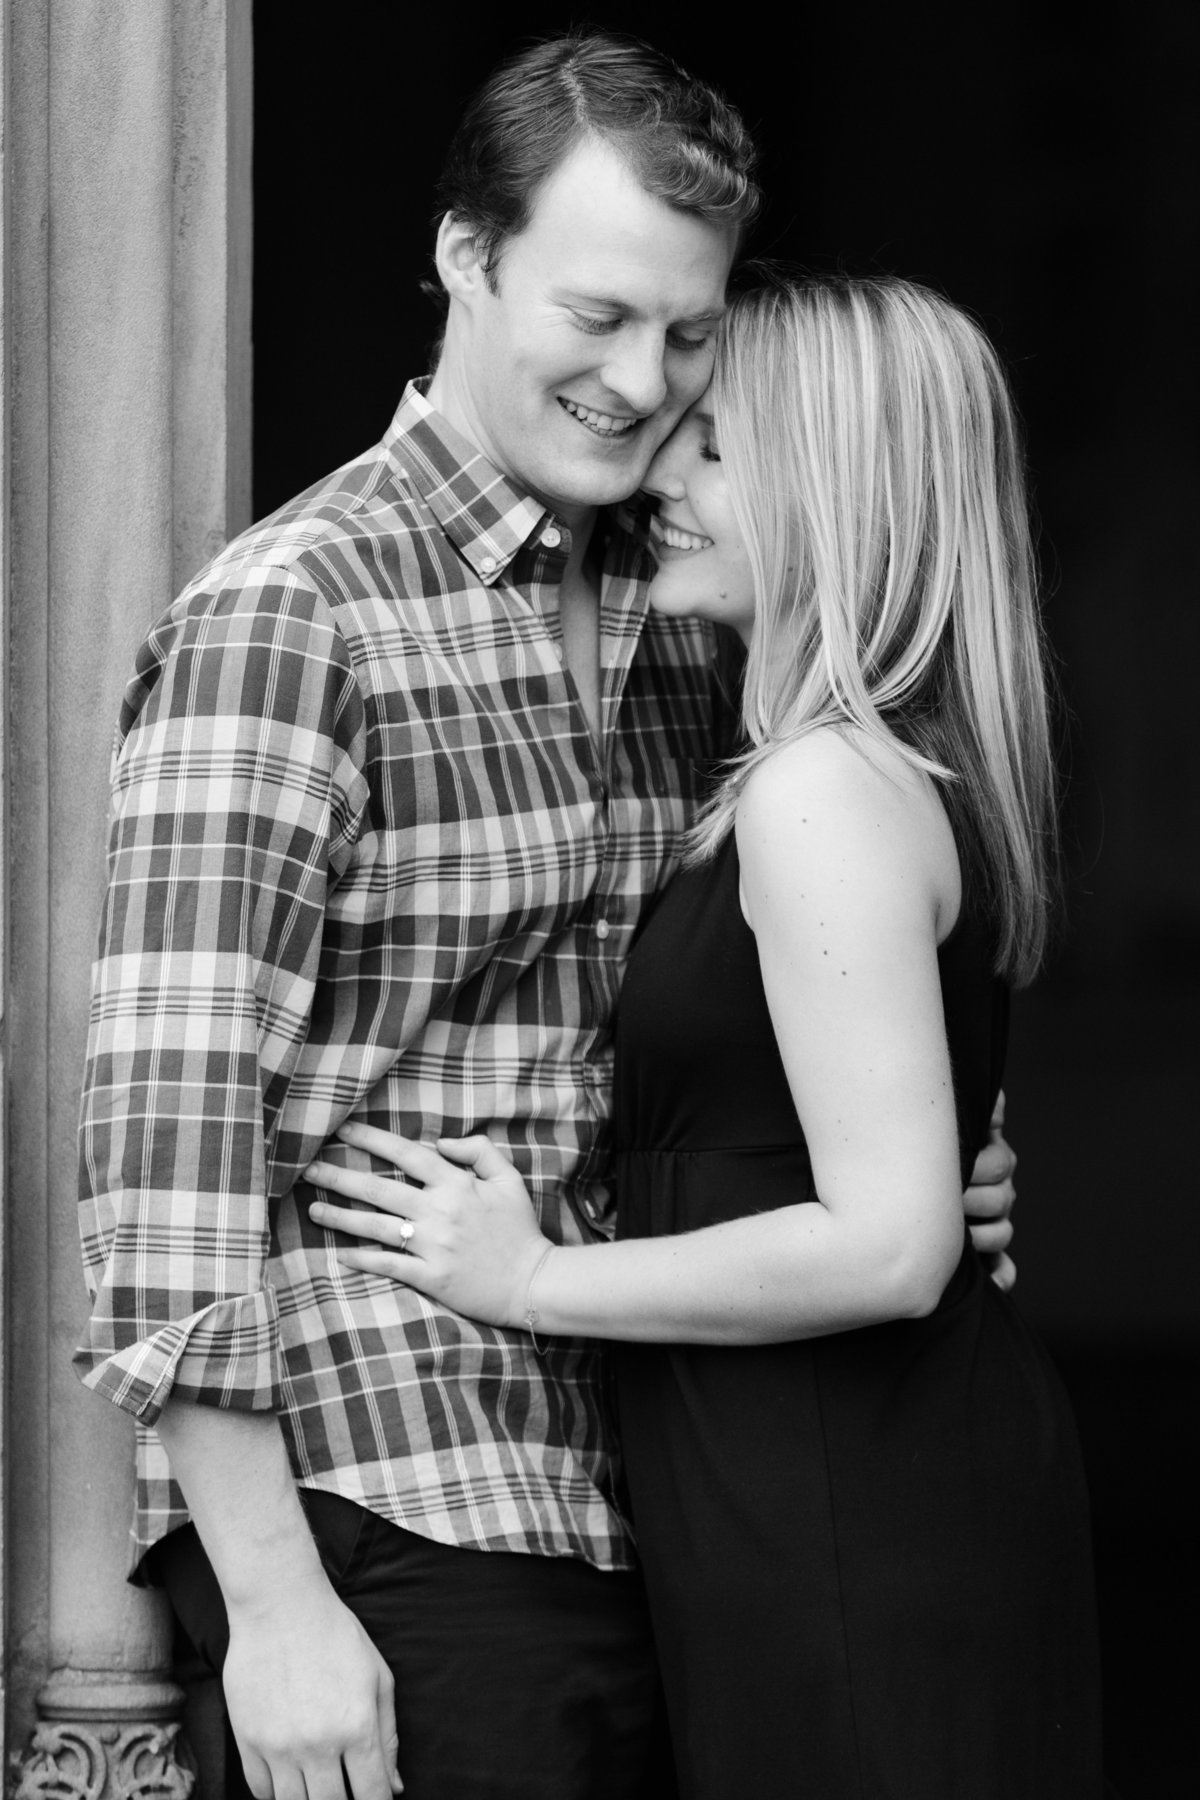 Jessica-Haley-Rye-New-York-Engagement-Photographer-Photo-16